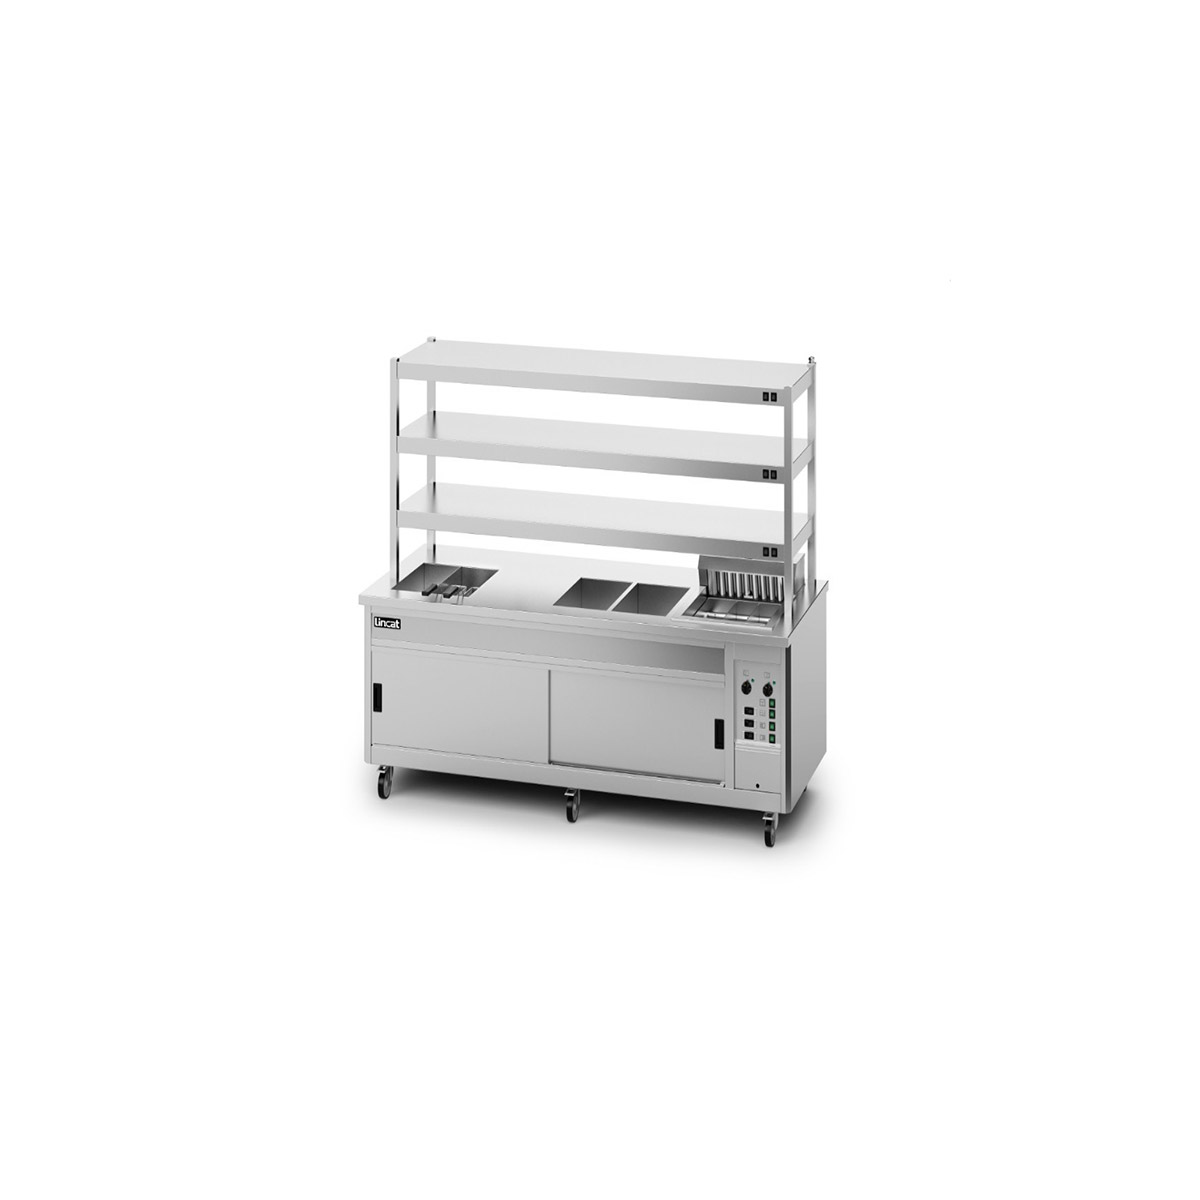 P10SP6PT - Lincat Panther SuperPass Series Free-standing Hot Cupboard - Bain Marie Top - W 2400 mm - 16.52 kW